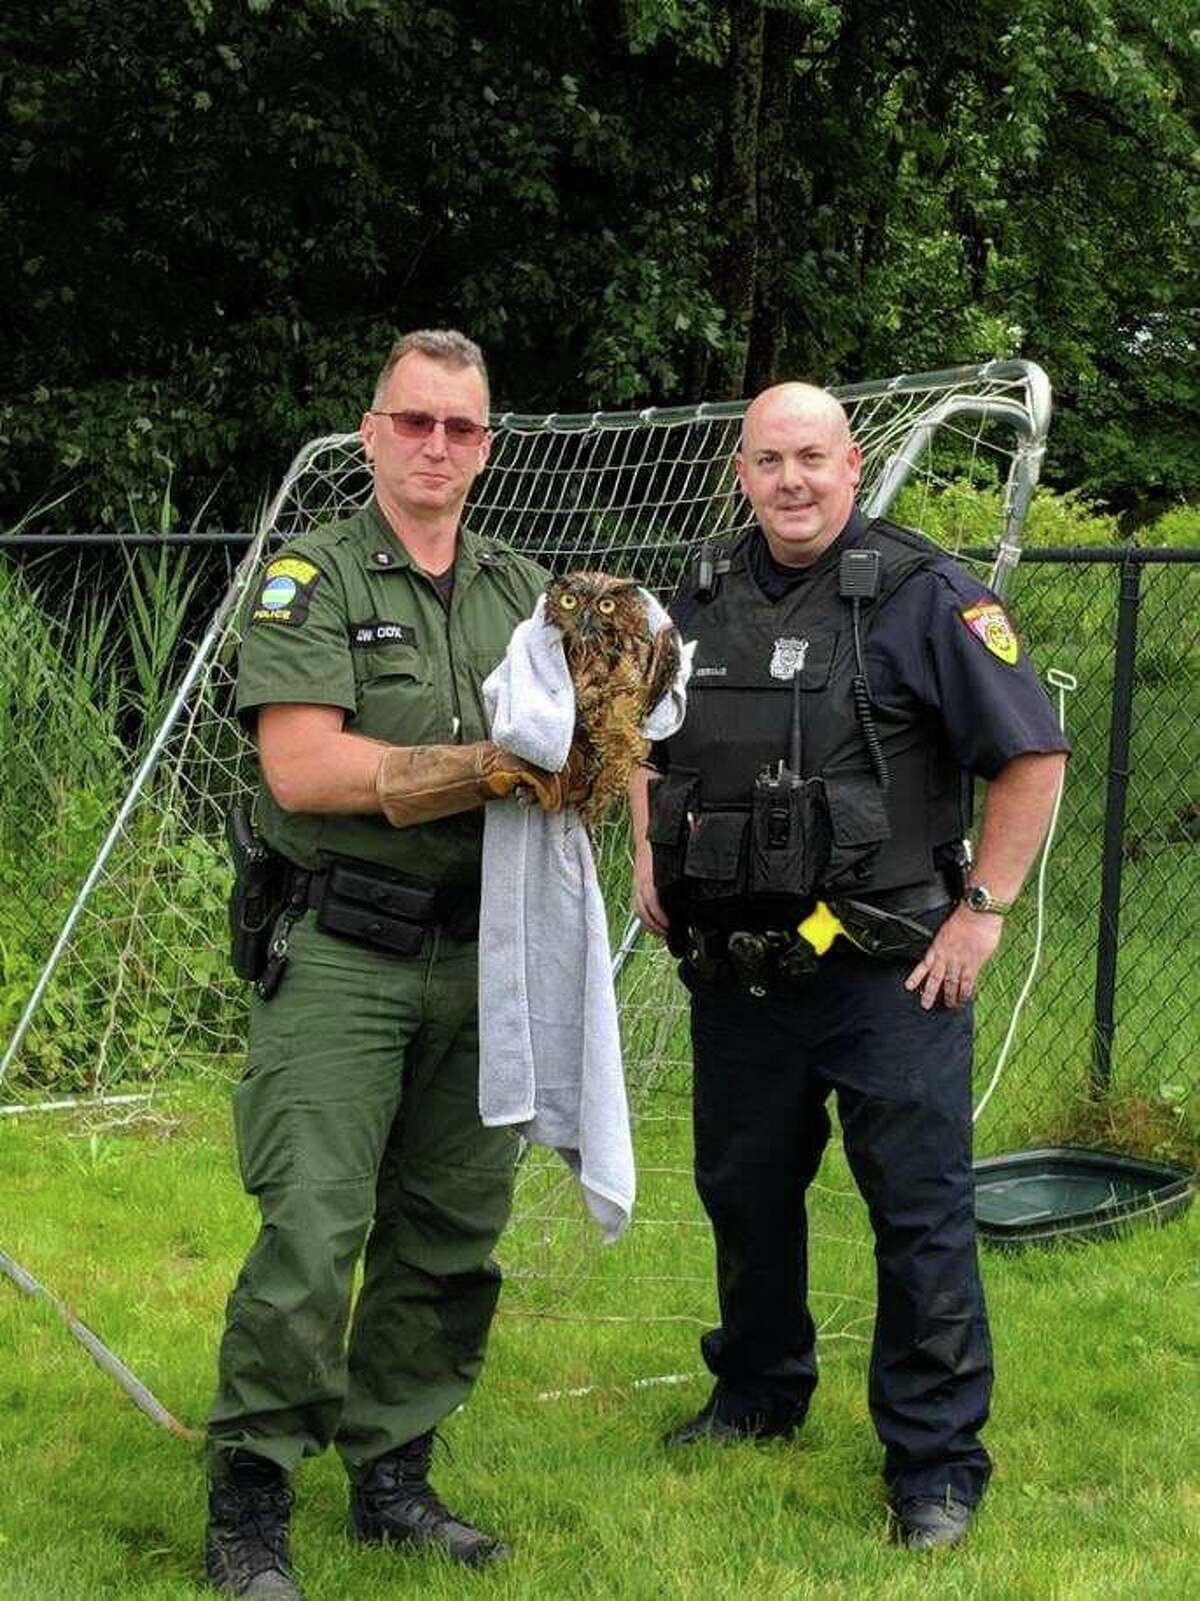 North Greenbush Police Officer J. Gervais and state Department of Environmental Conservation Officer J. Cox freed an owl caught in a soccer net on June 21, 2019. The owl was not injured.